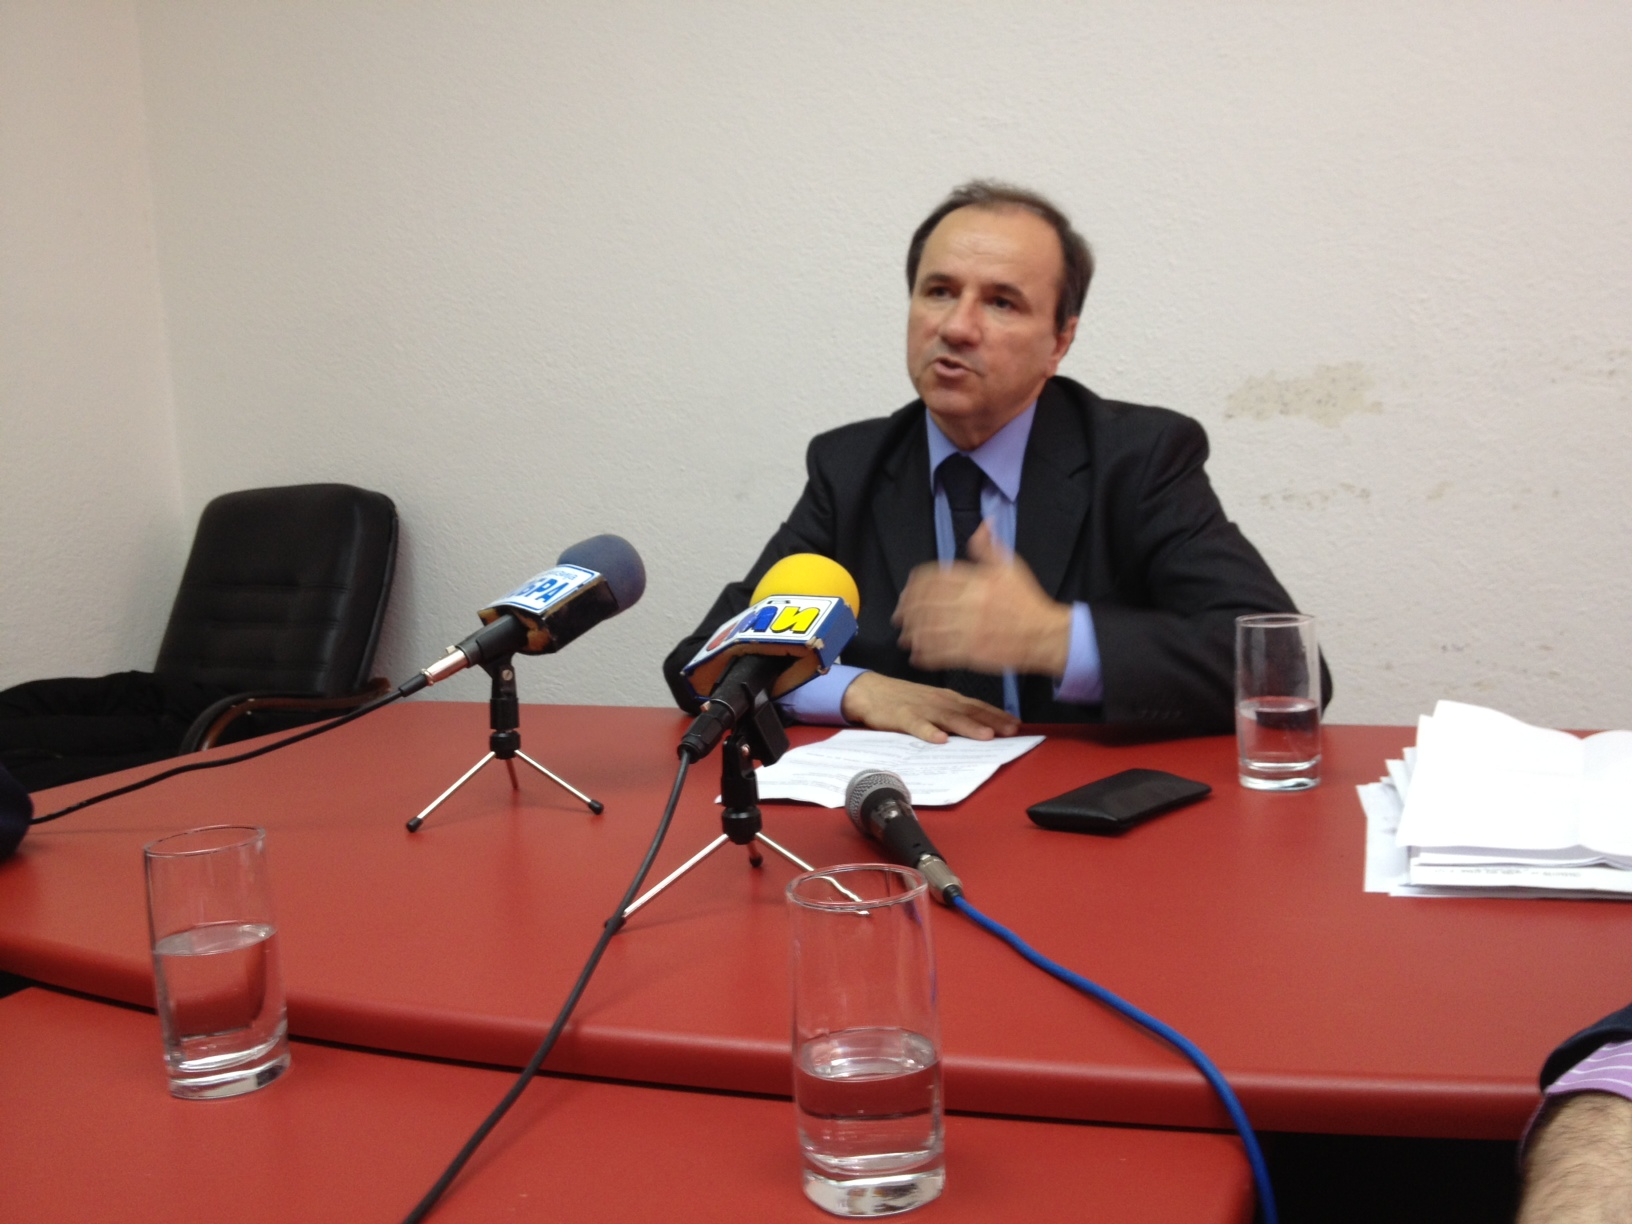 """IBNA Interview/ """"Religious radicalism threatens the region, a strong reaction is needed"""", says Trajanov"""